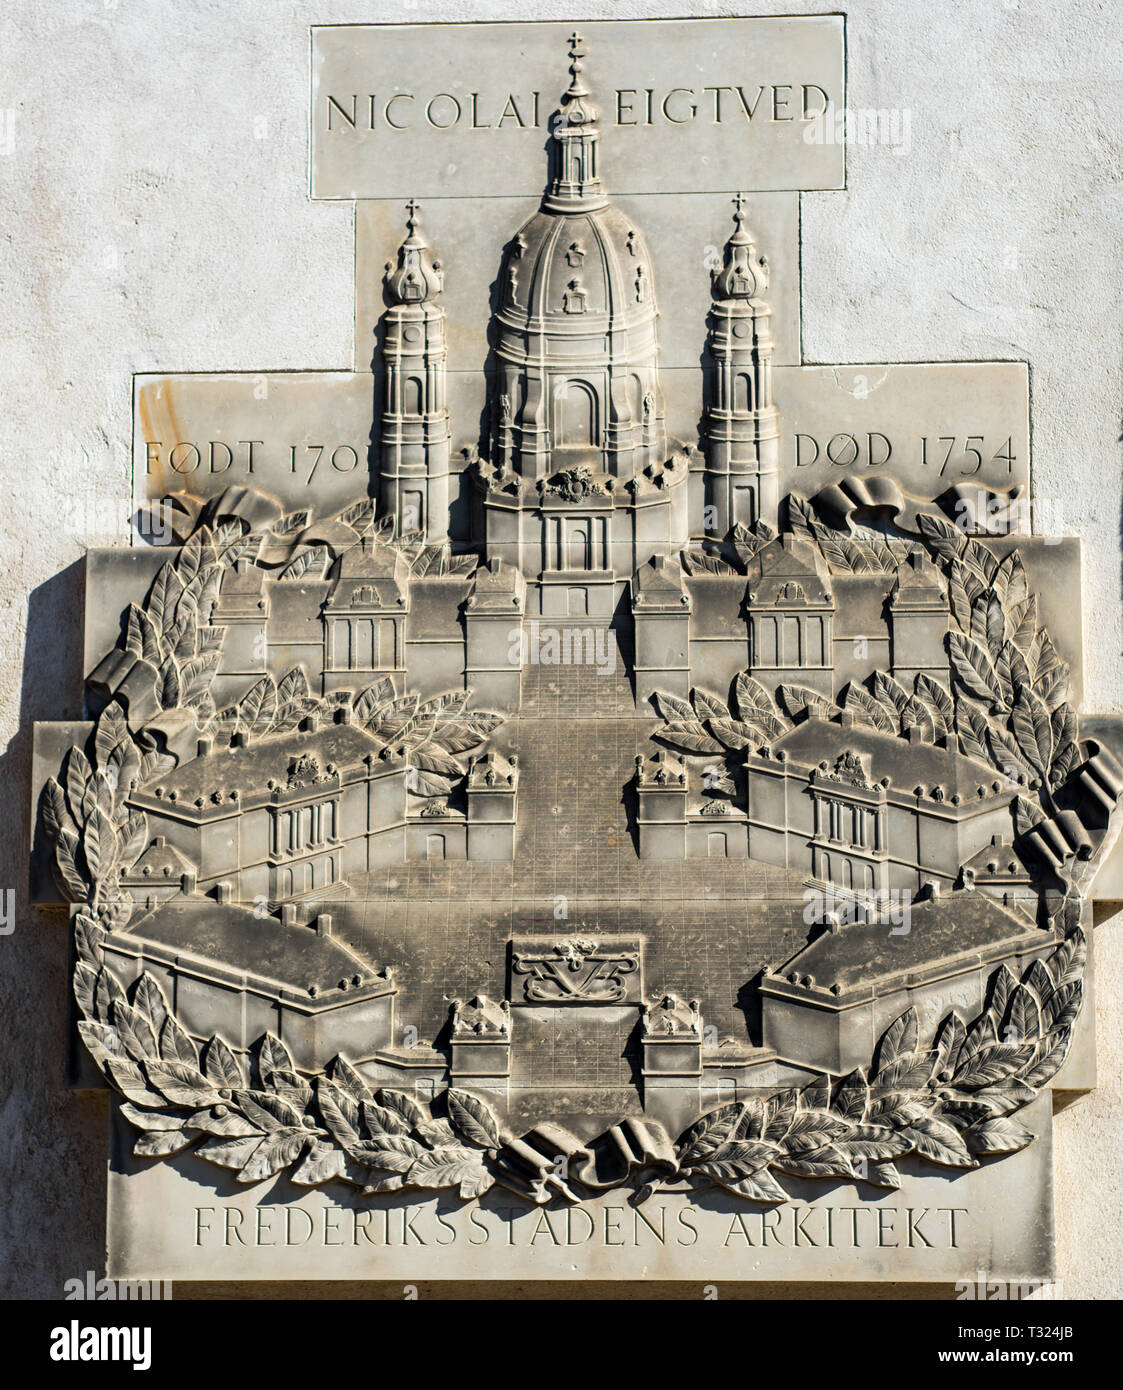 A memorial to the architect Nicolai Eigtved (Niels Eigtved) the 18th century Danish architect who designed many of the buildings in Frederiksstaden - Stock Image